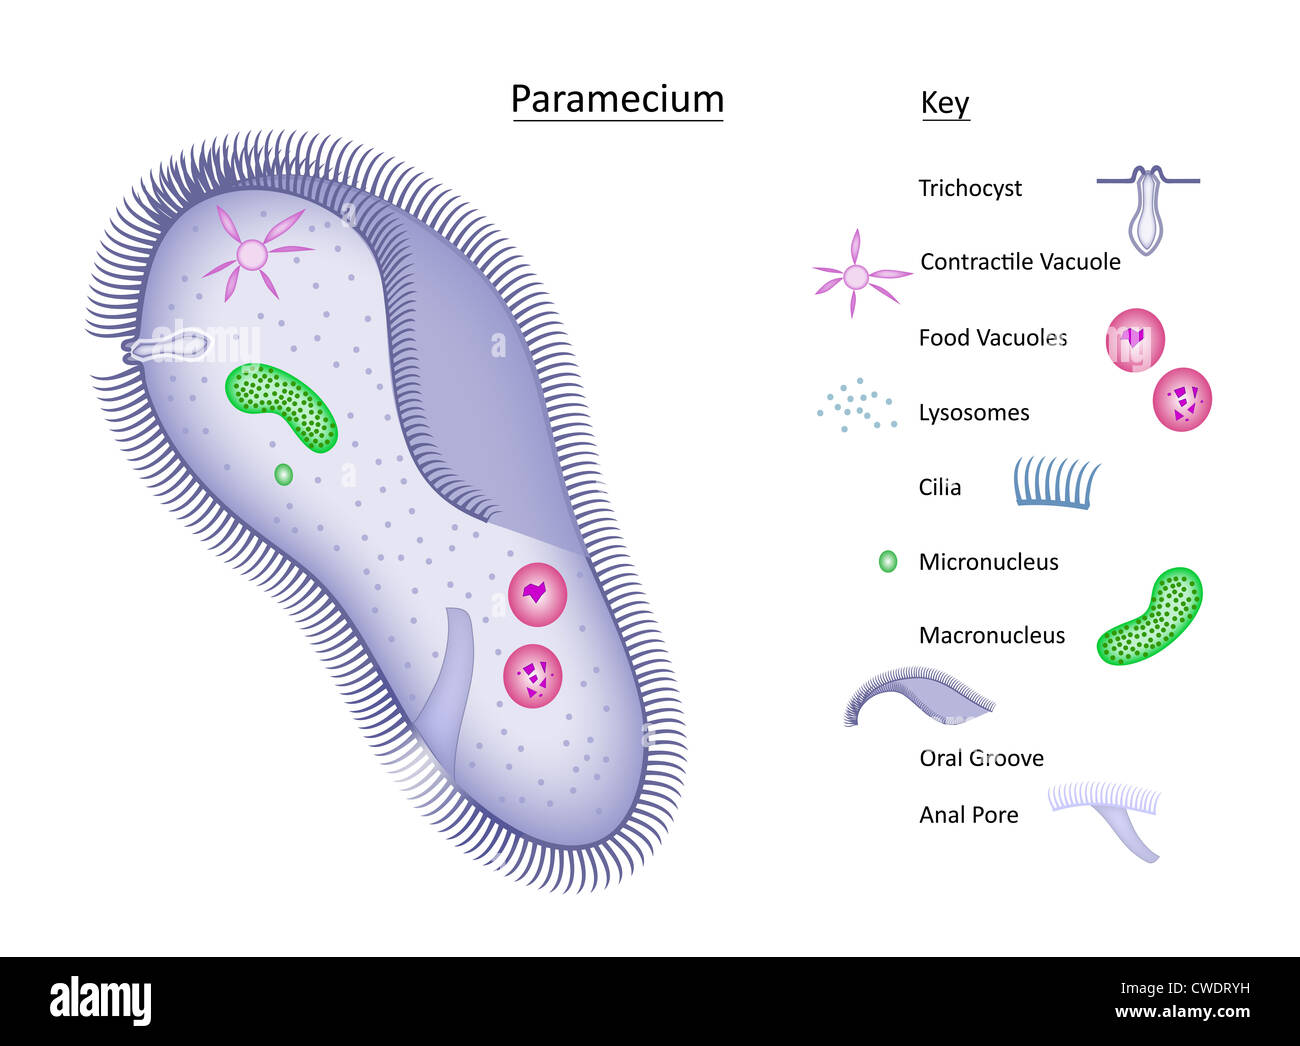 Colorful vector illustration of a single celled paramecium with colorful vector illustration of a single celled paramecium with structures clearly labeled in separate key all layers labeled pooptronica Gallery